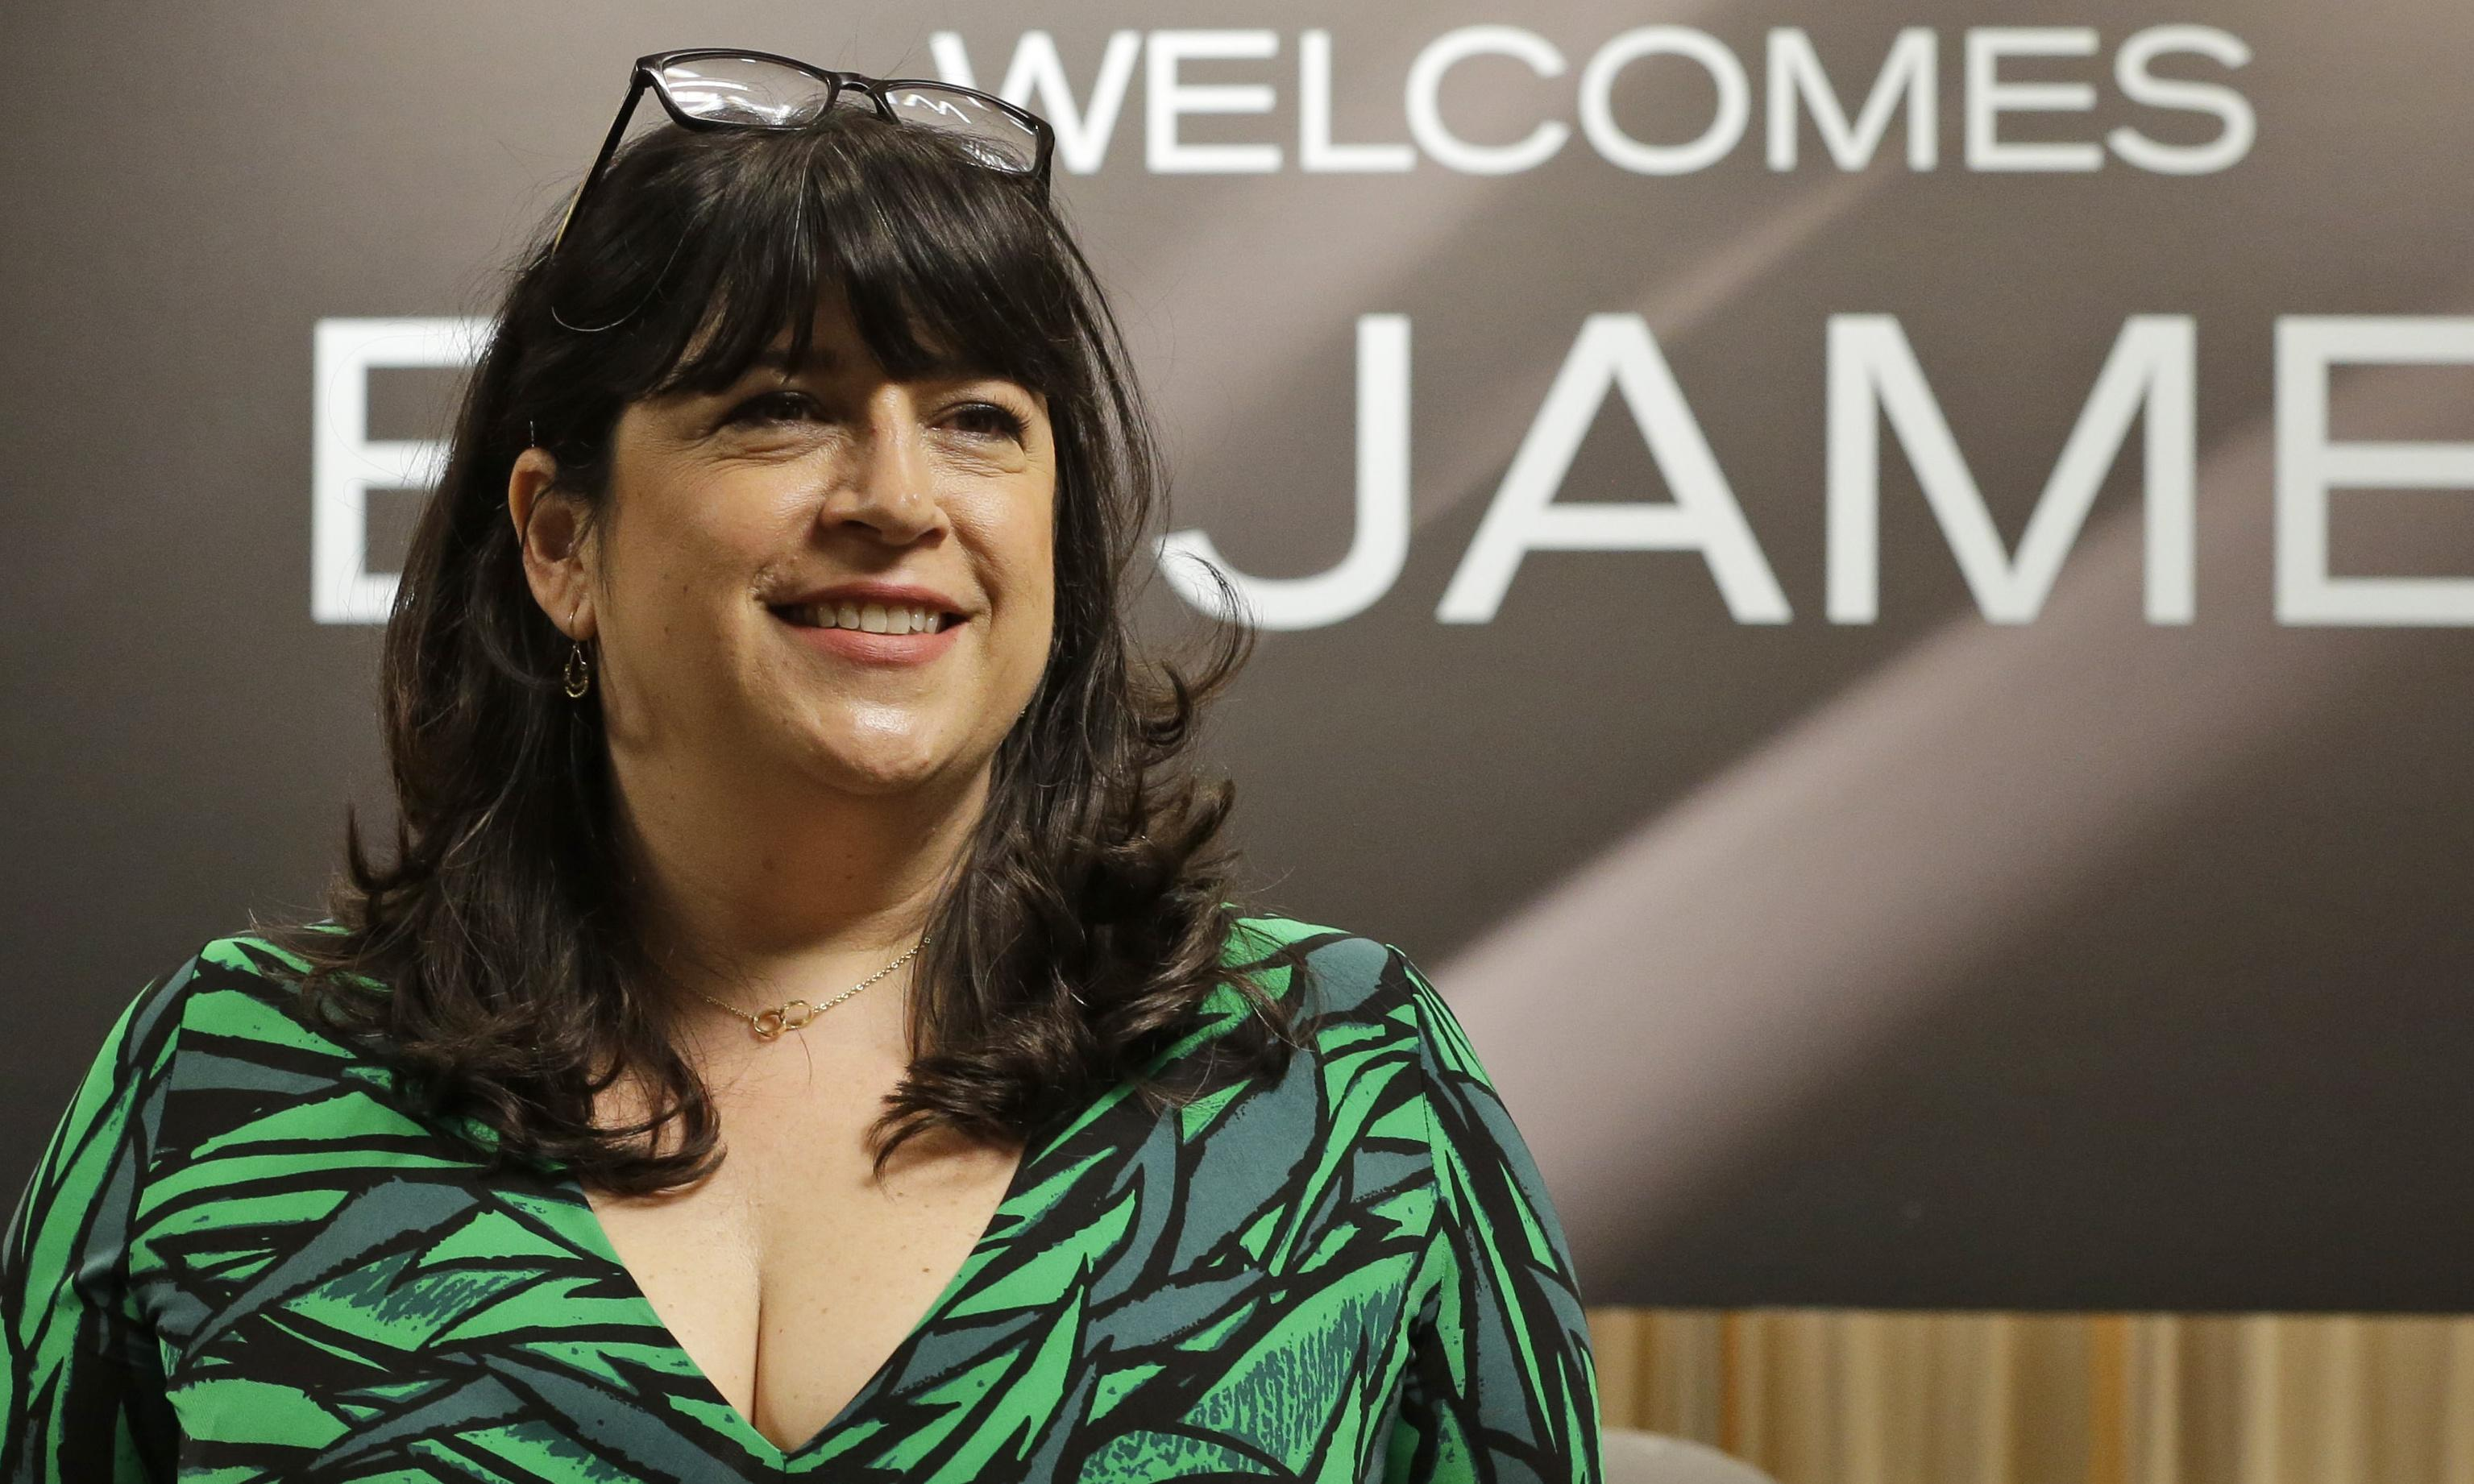 EL James's new romance whipped by critics, but still romps to No 1